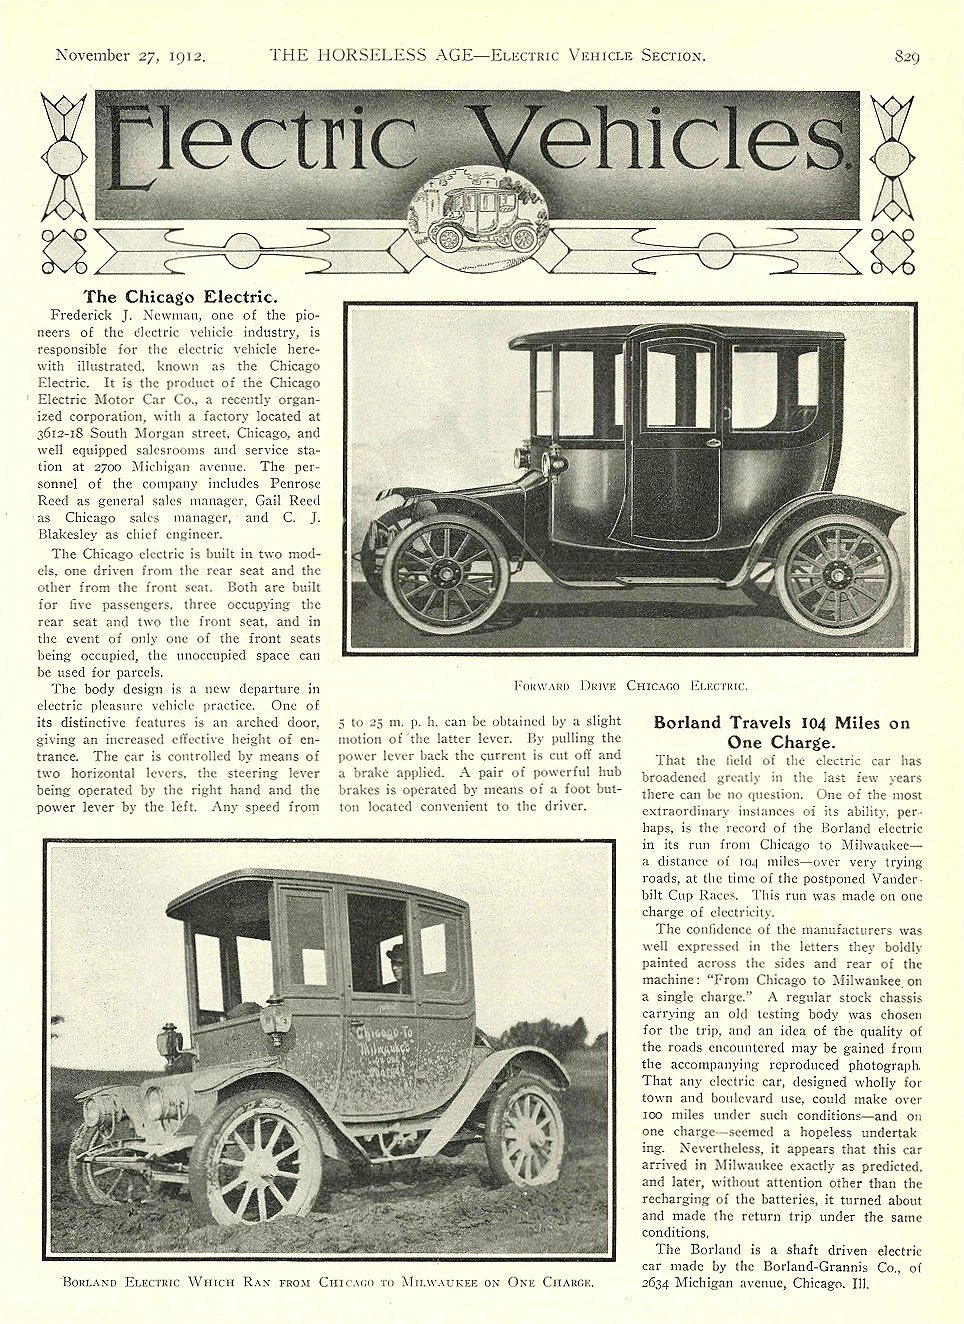 1912 11 27 CHICAGO Electric Article The Chicago Electric Borland Travels 104 Miles THE HORSELESS AGE November 27, 1912 University of Minnesota Library 8.5″x11.5″ page 829